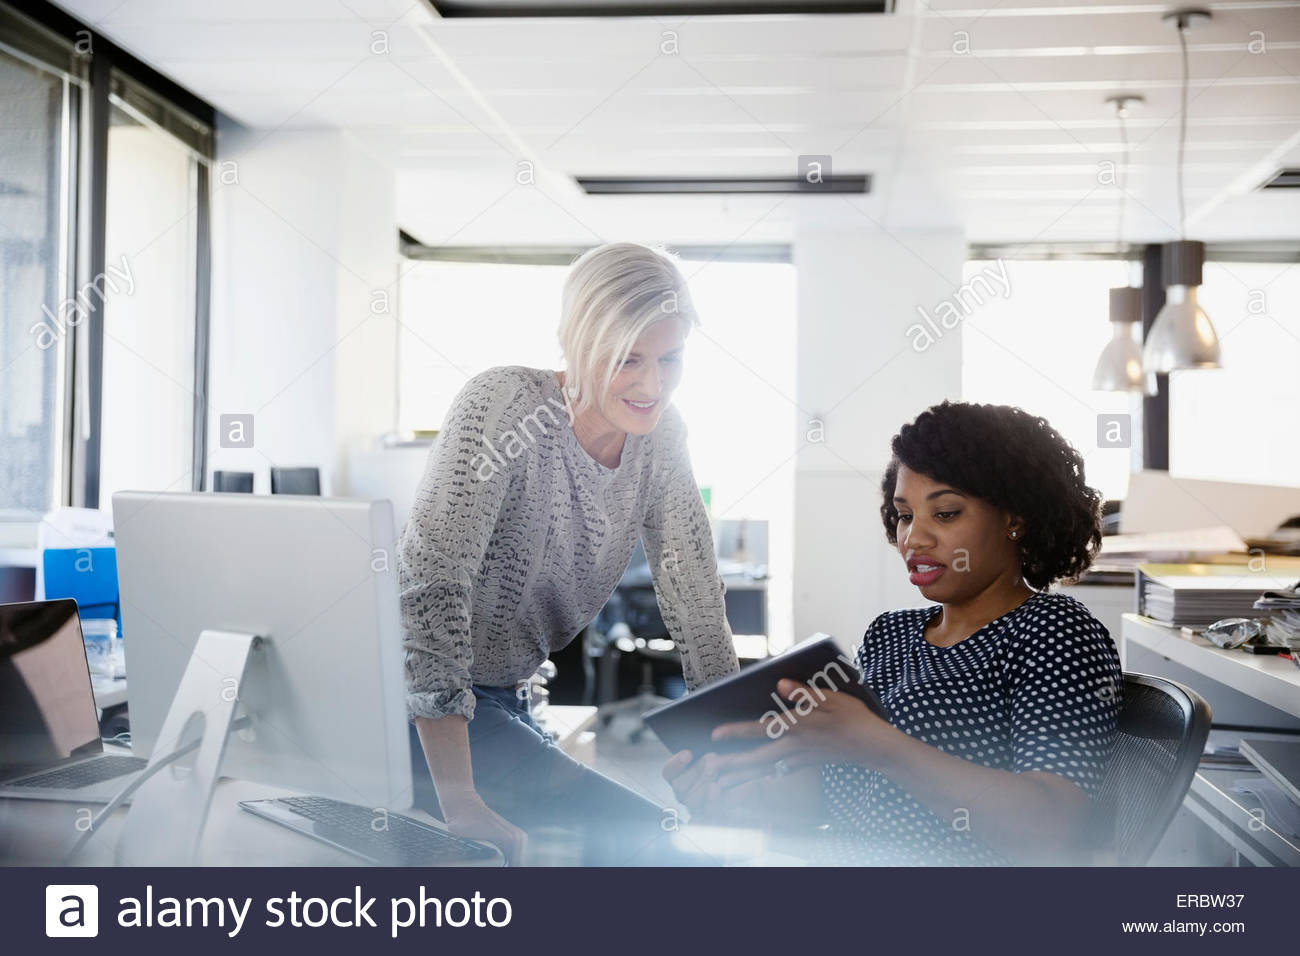 Businesswomen working at digital tablet in office - Stock Image